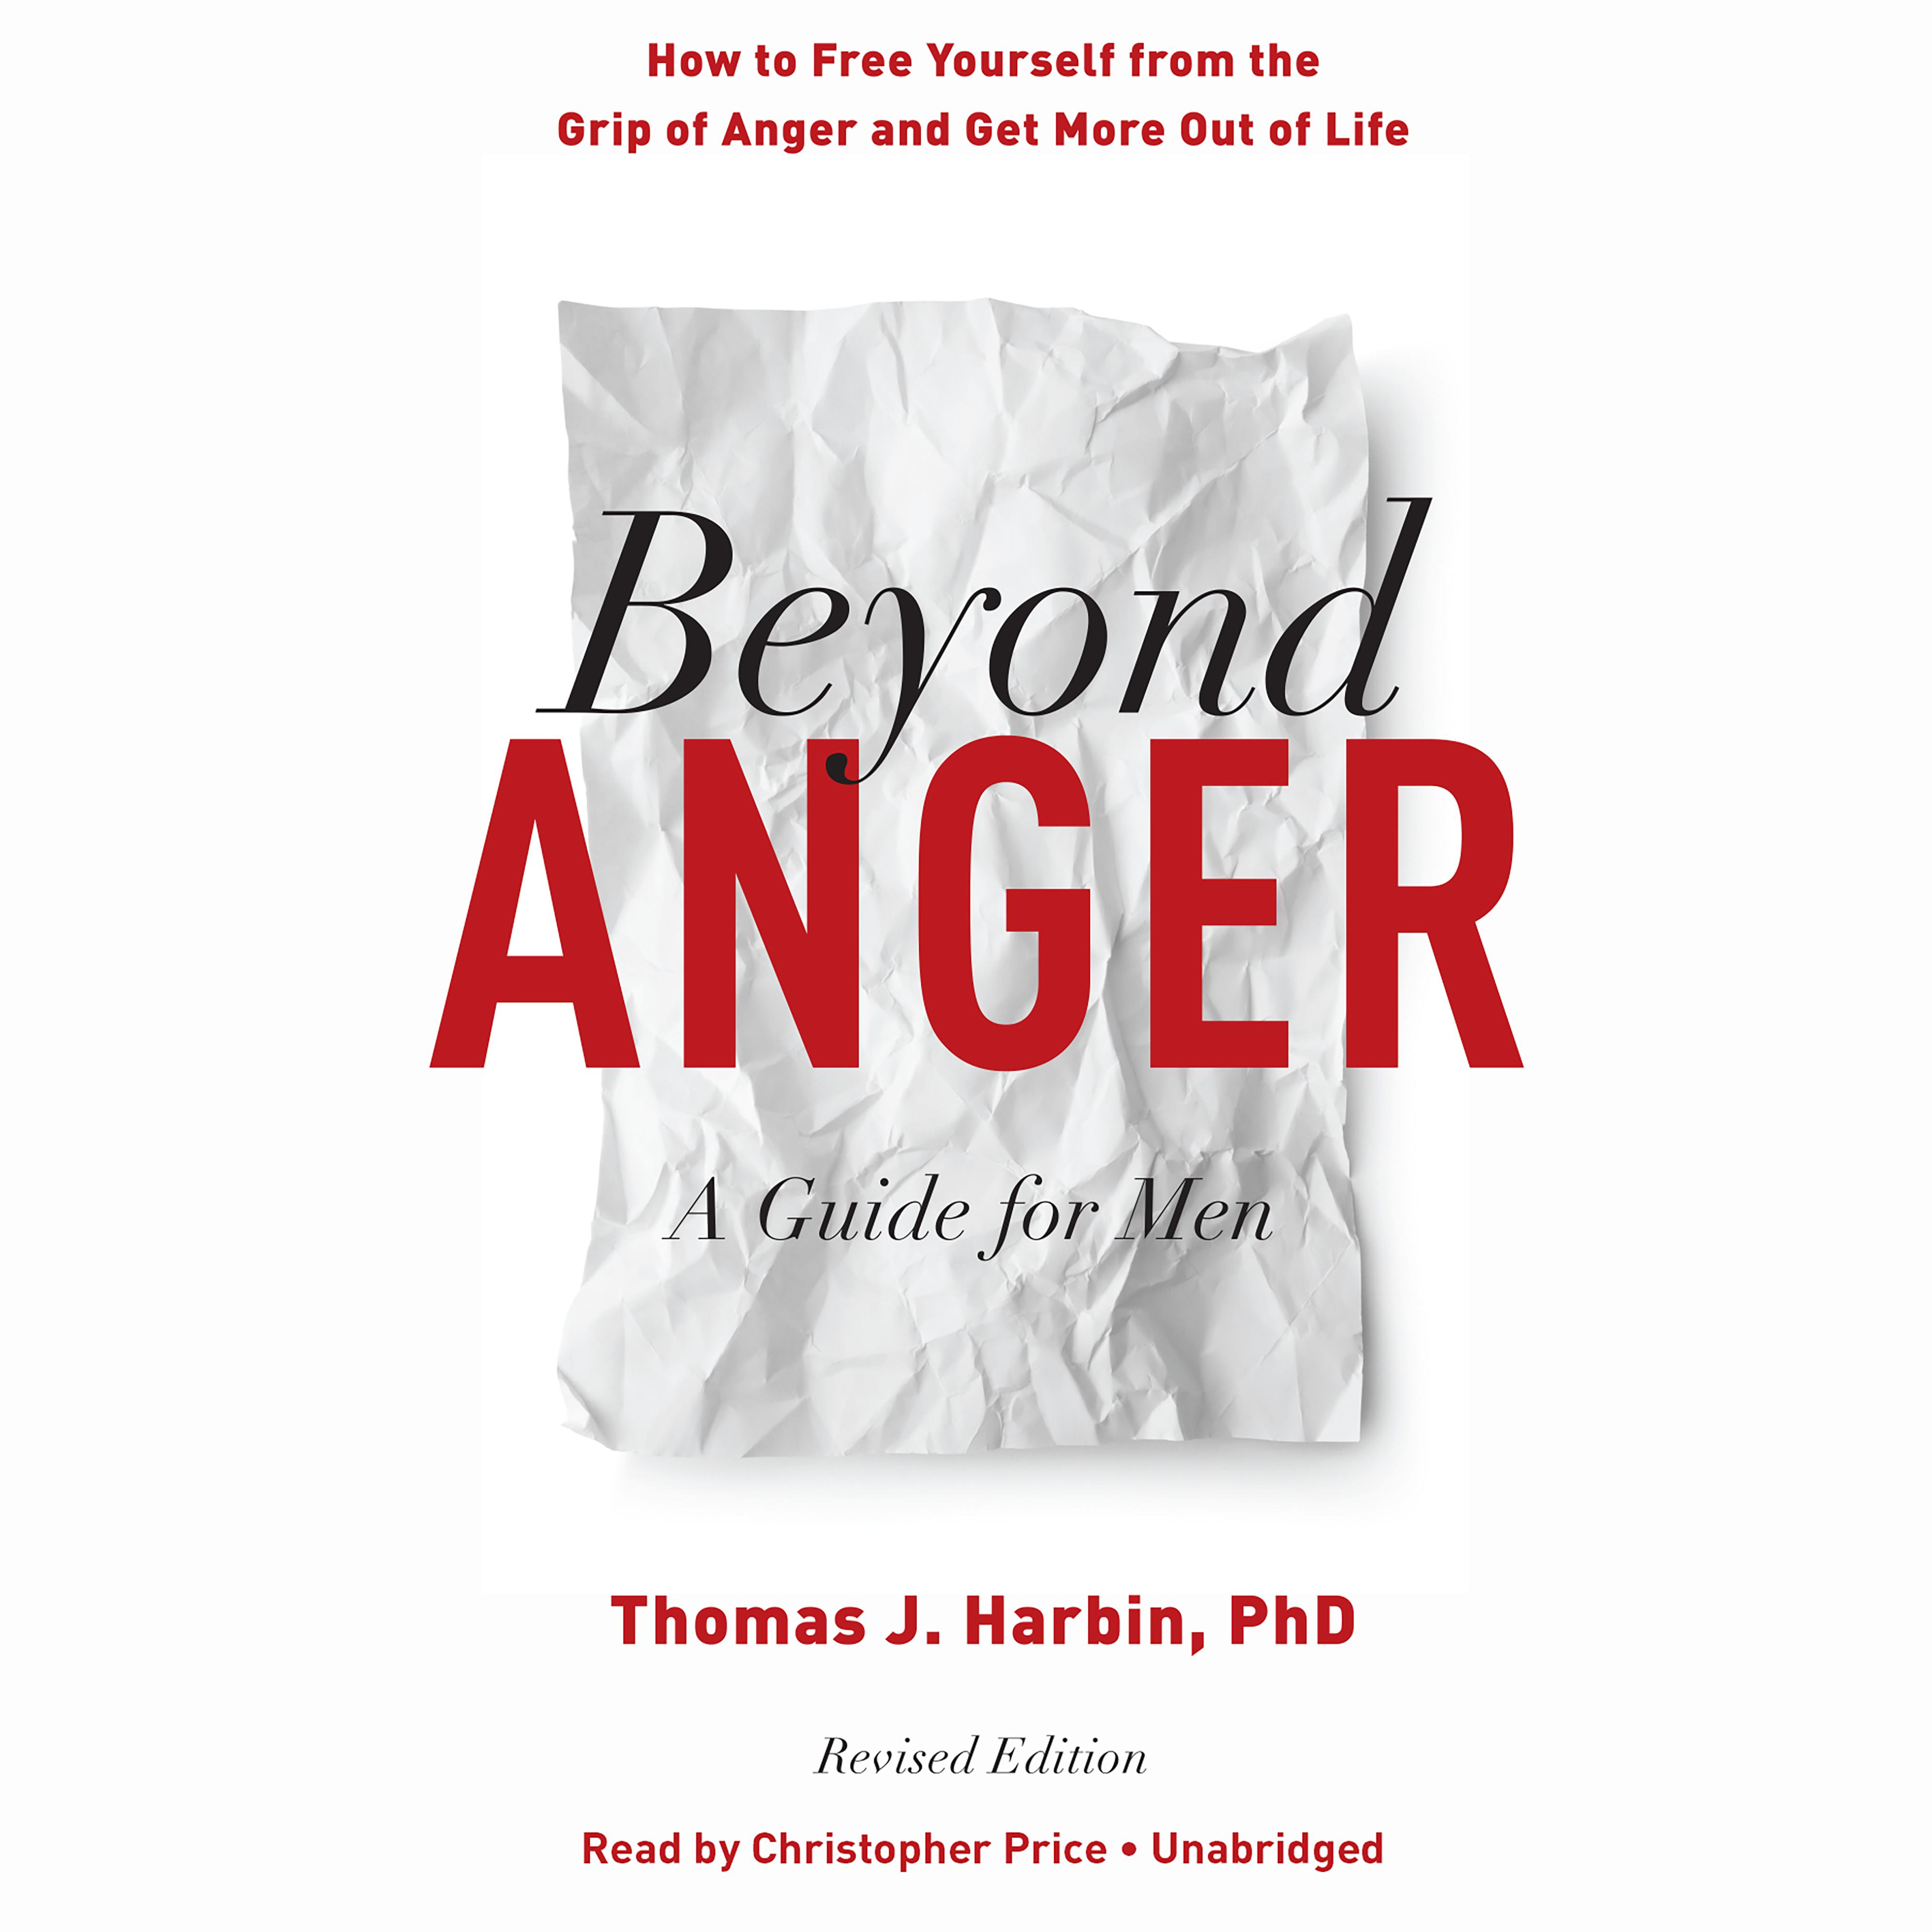 beyond anger revised edition audiobook listen instantly rh audiobookstore com Anger and Controlling Men How Men Express Anger